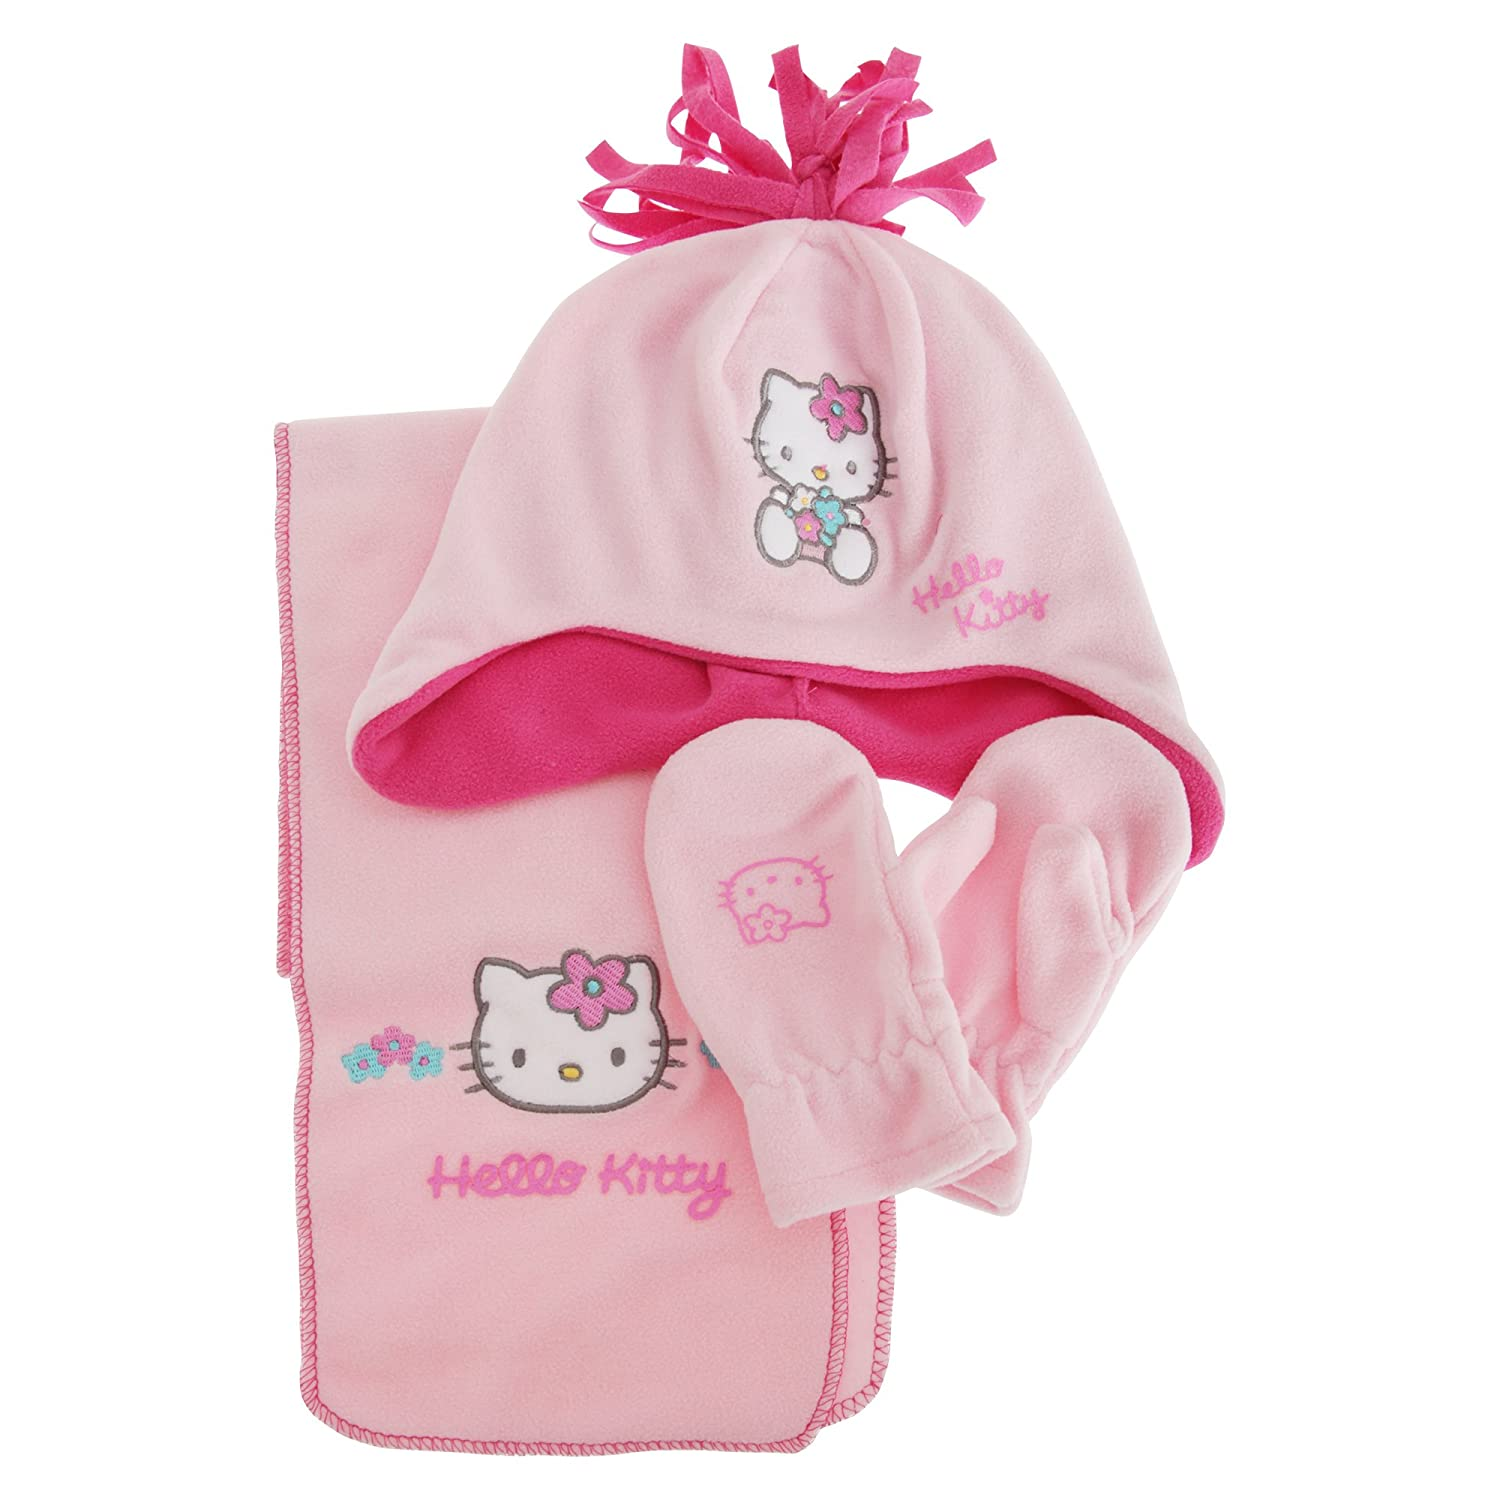 Universal Textiles Hello Kitty Girls Winter Hat Scarf and Gloves Set UTGL594_1